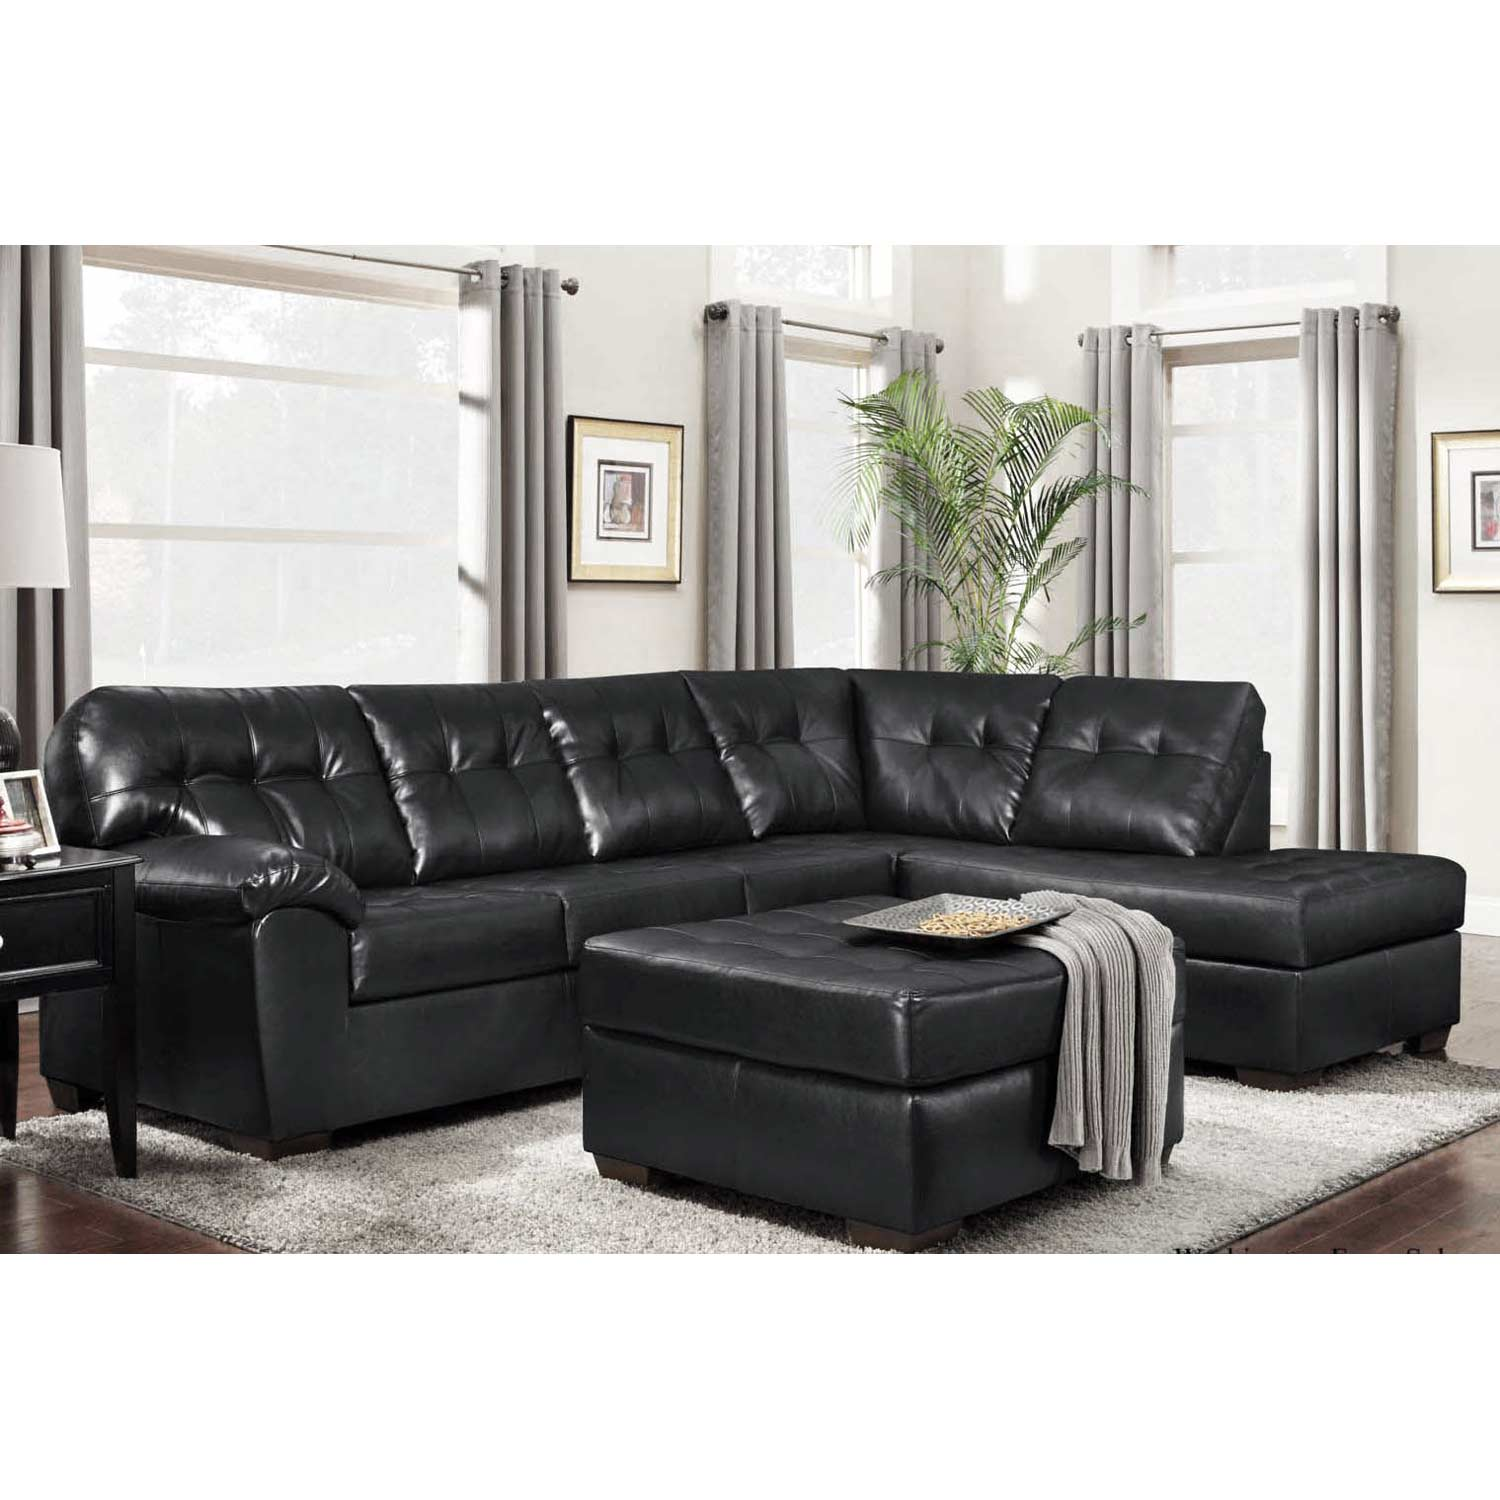 Rachel Tufted Chaise Sectional Sofa Contempo Black